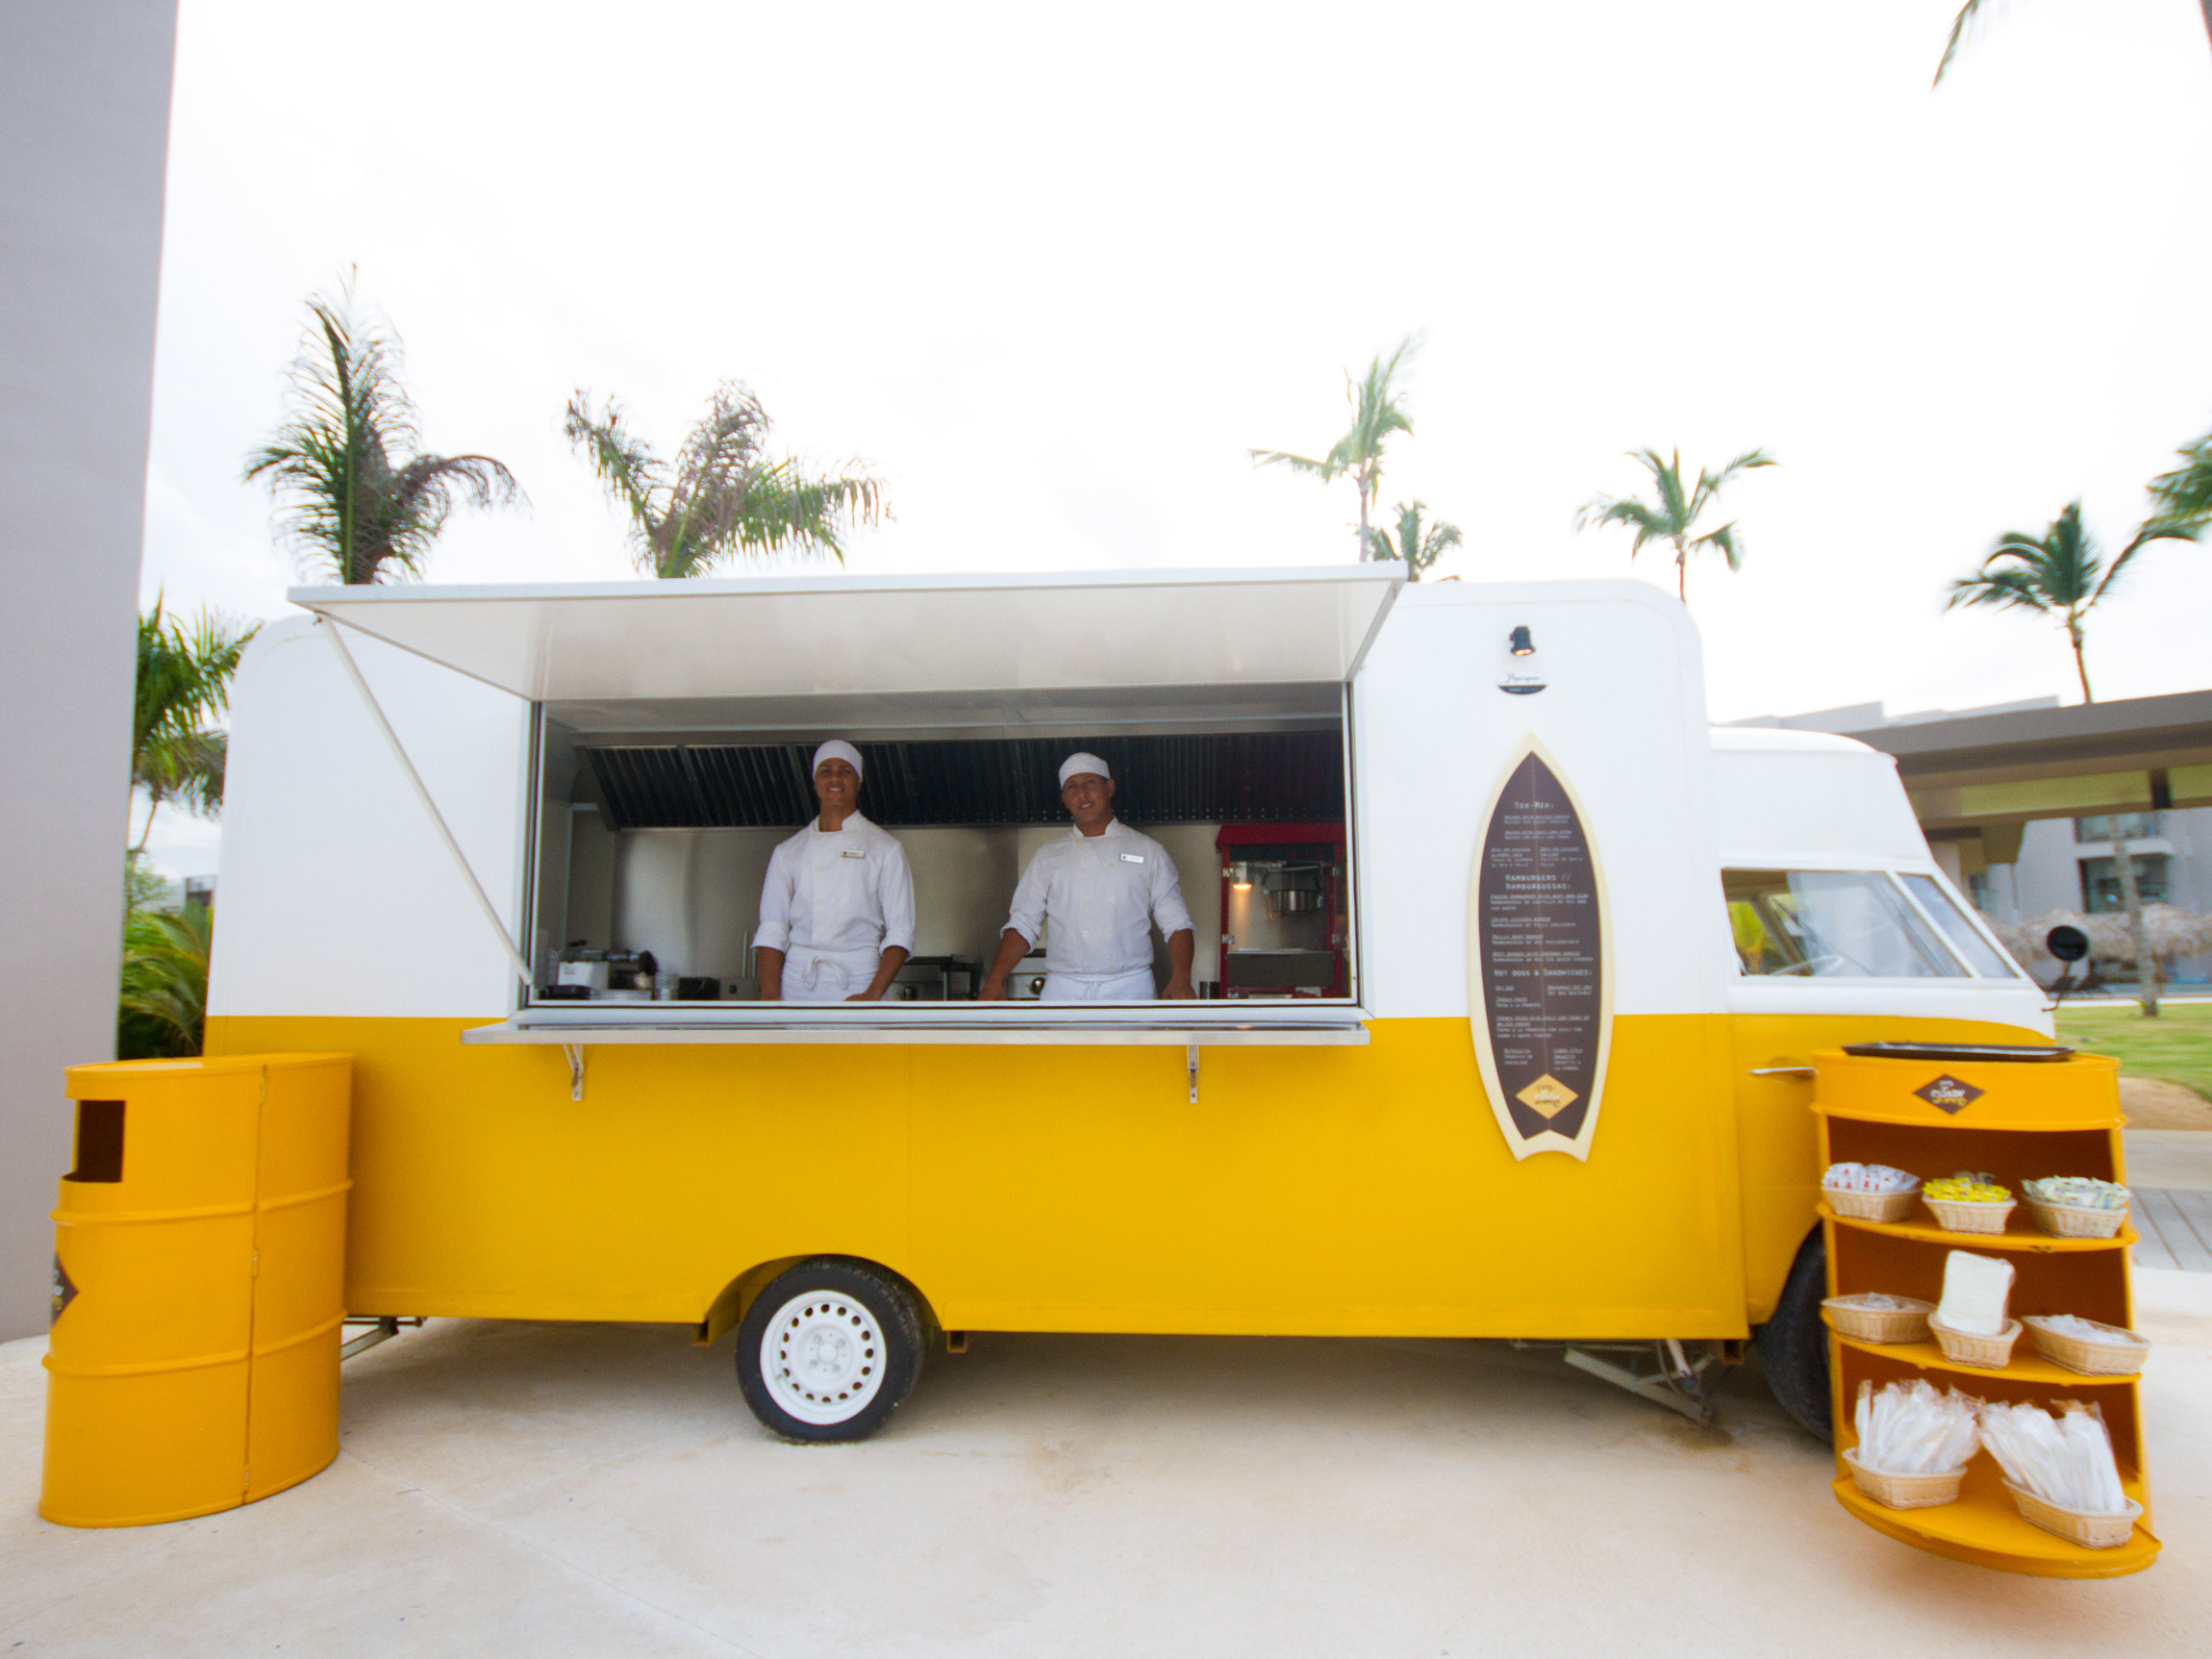 All Inclusive Resort Food Truck